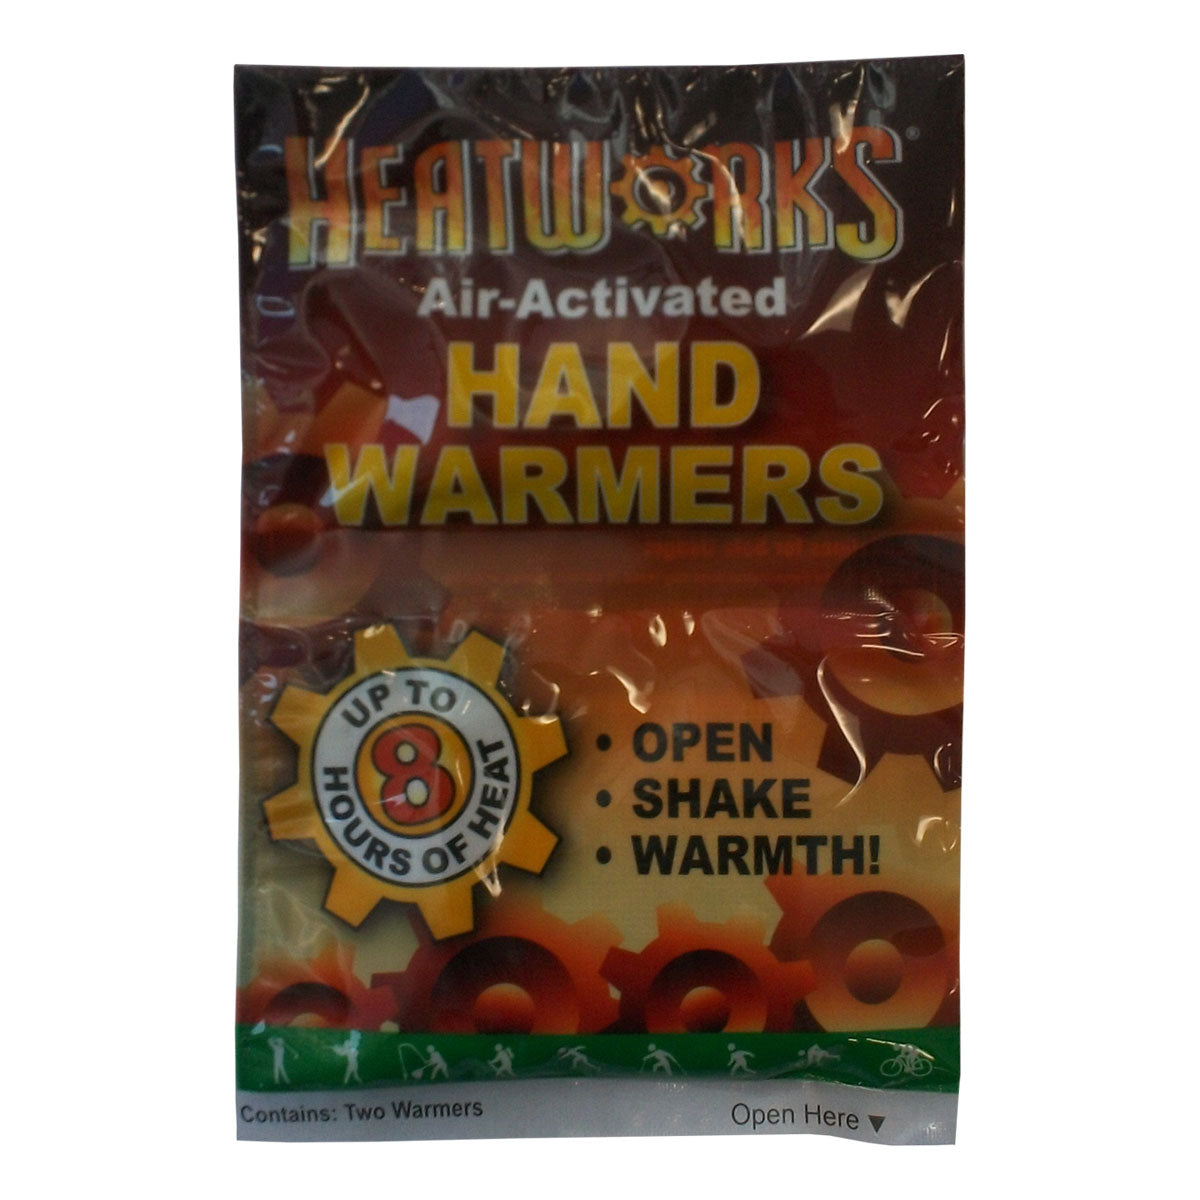 Heatworks Hand Warmers         - G00002942